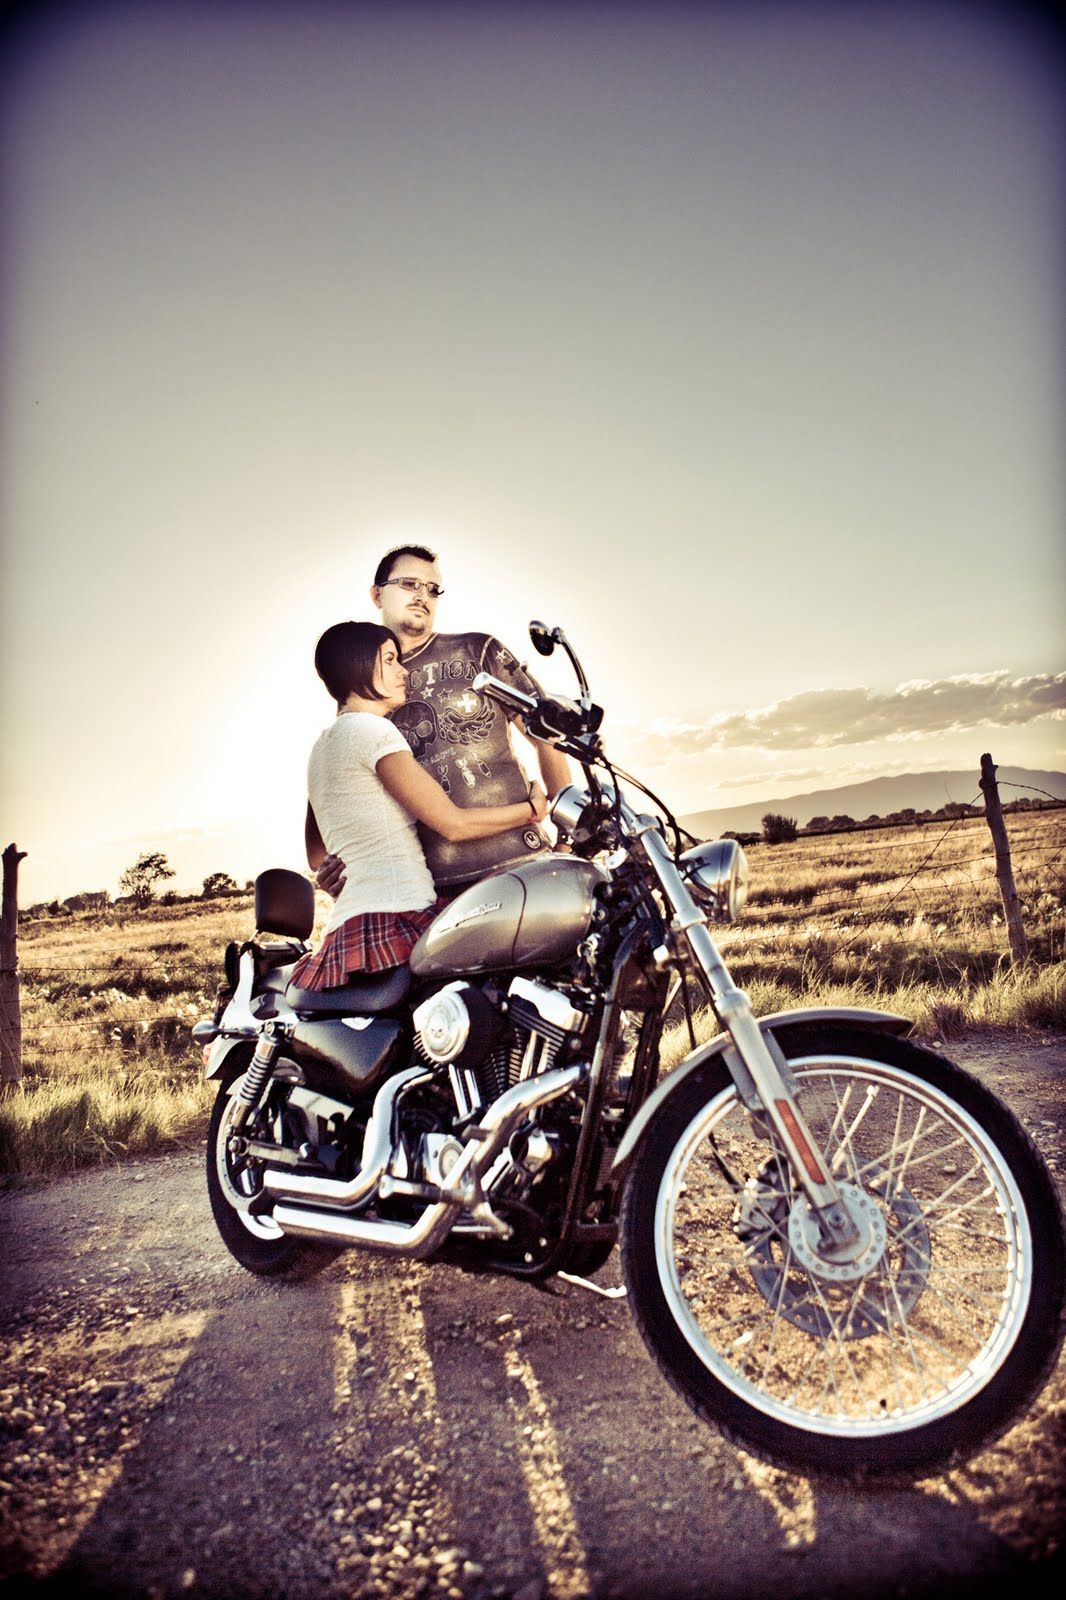 Couples Motorcycle Photography Minus The Skirt Really Cute Pics